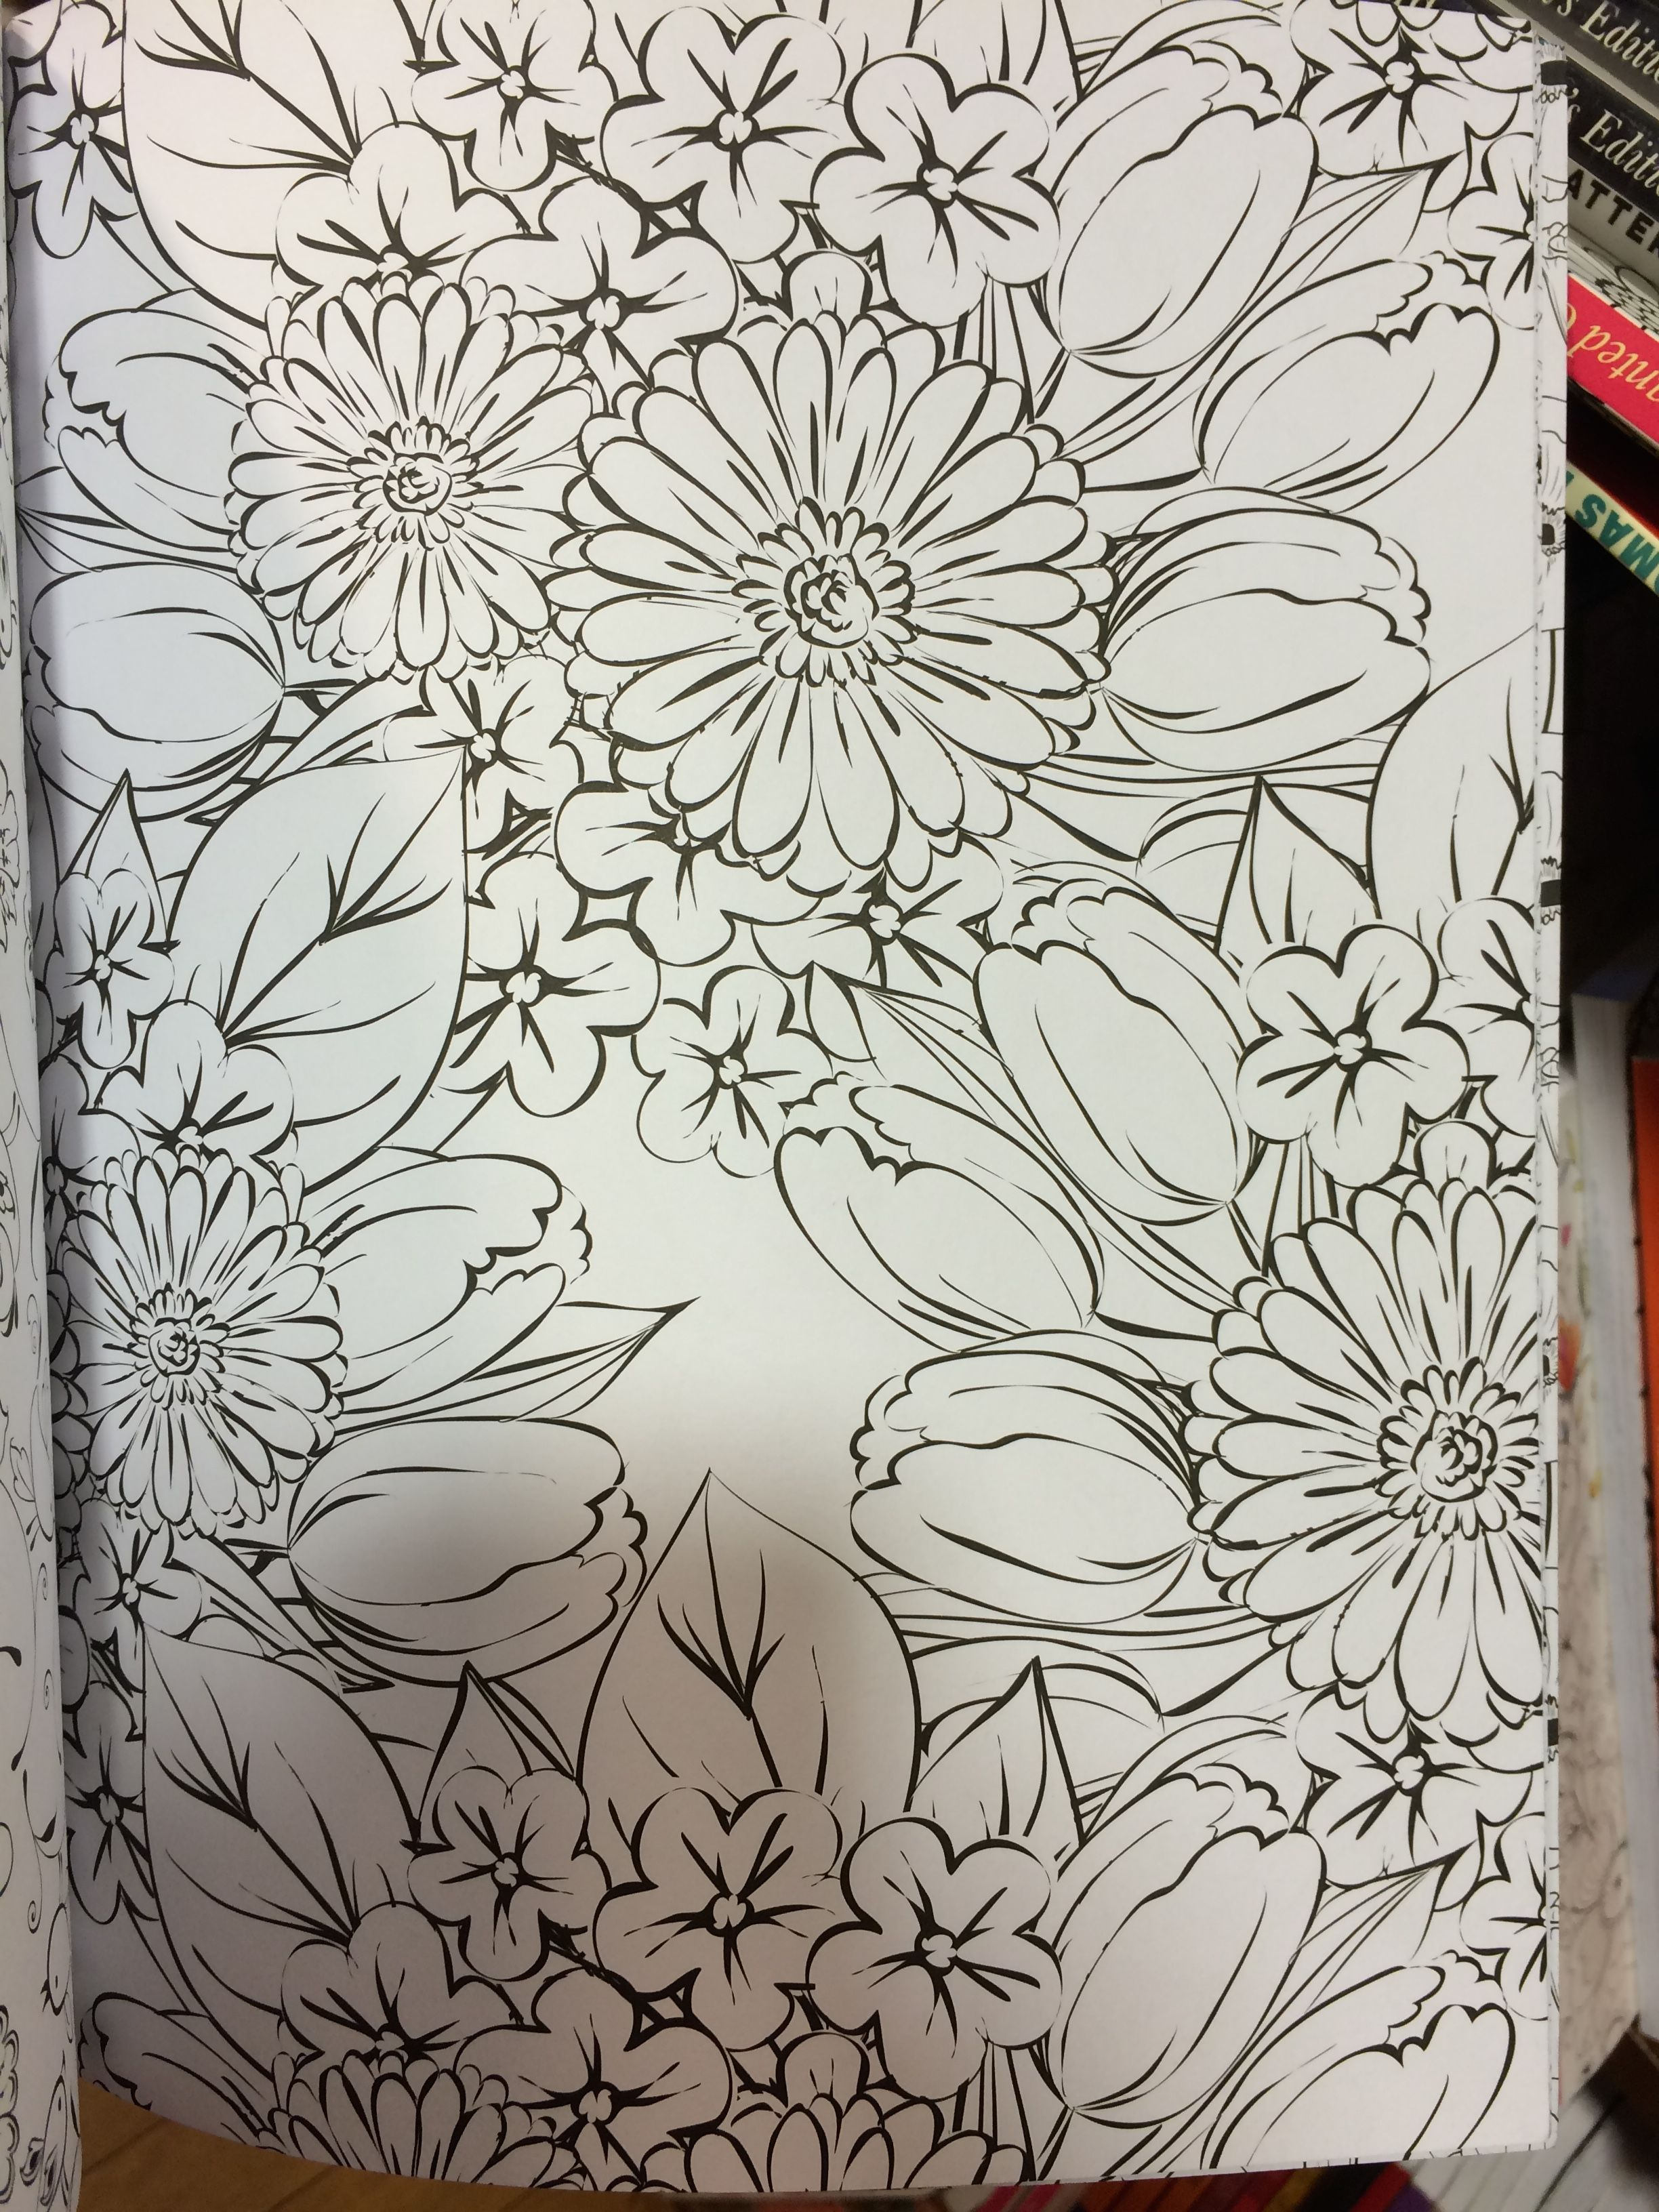 Another Type Of Tulip Pattern Outline In A Coloring Book Kinokuniya Store